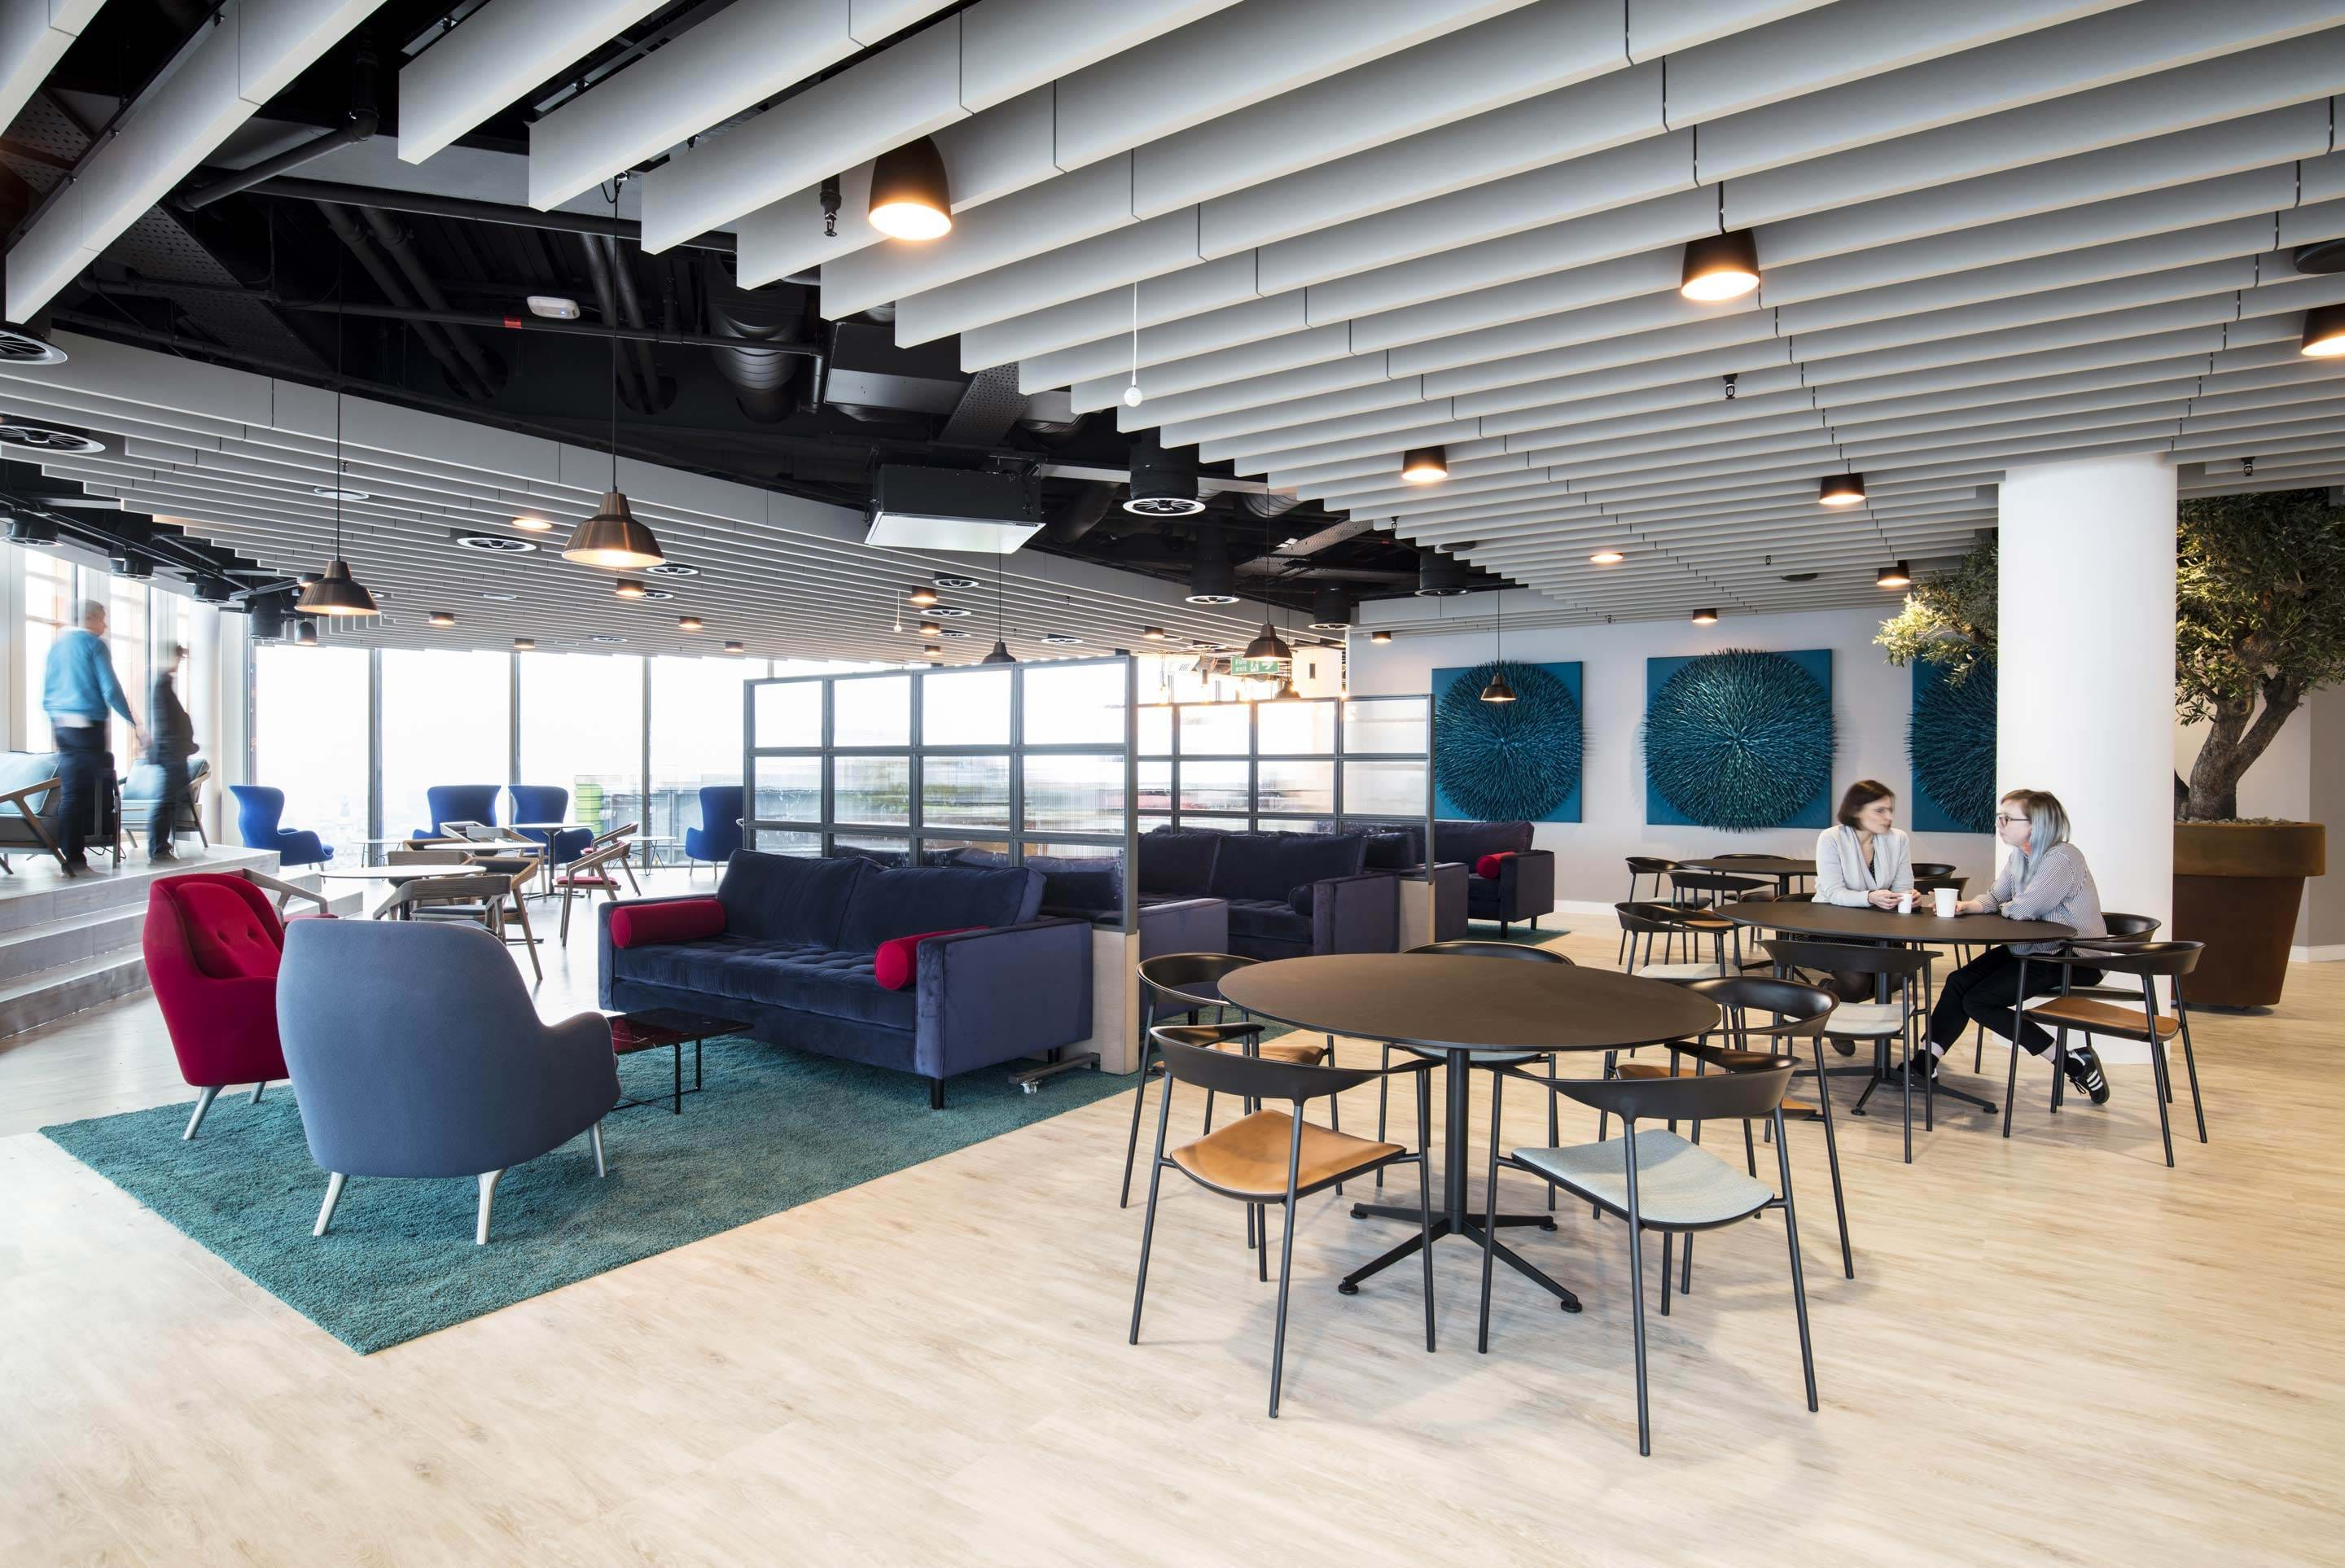 NBC Universal – Breakout space in the Skyline coffee bar